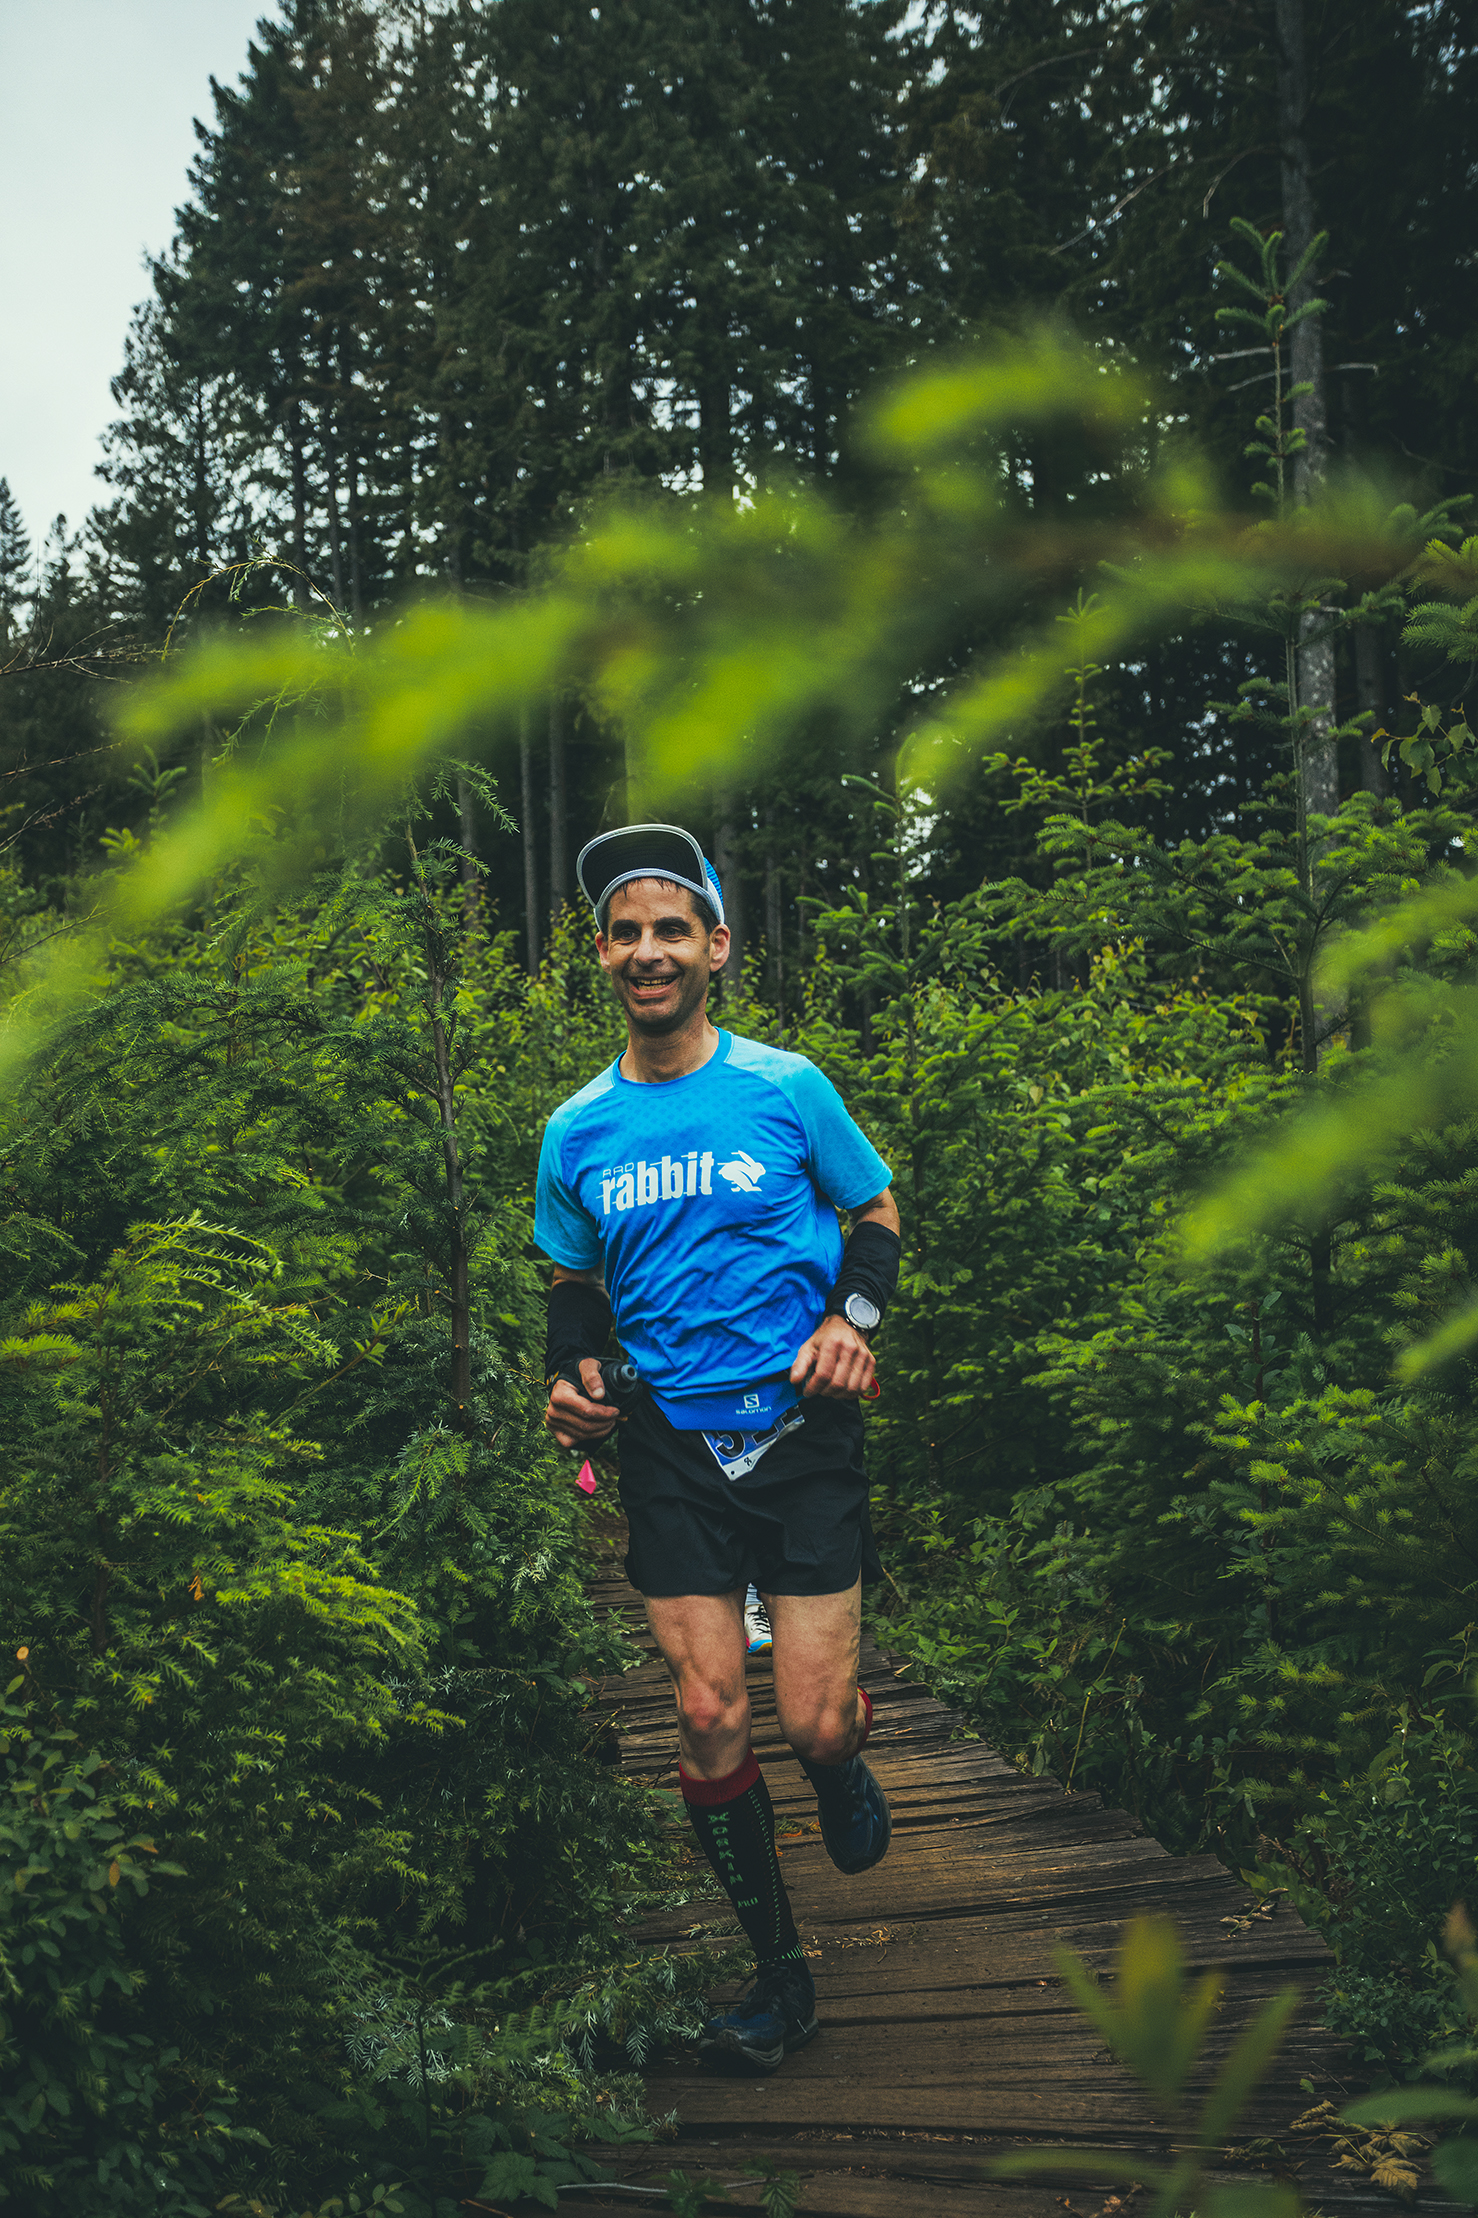 Fraser Valley Trail Races - Bear Mountain - IMG_1442 by Brice Ferre Studio - Vancouver Portrait Adventure and Athlete Photographer.jpg